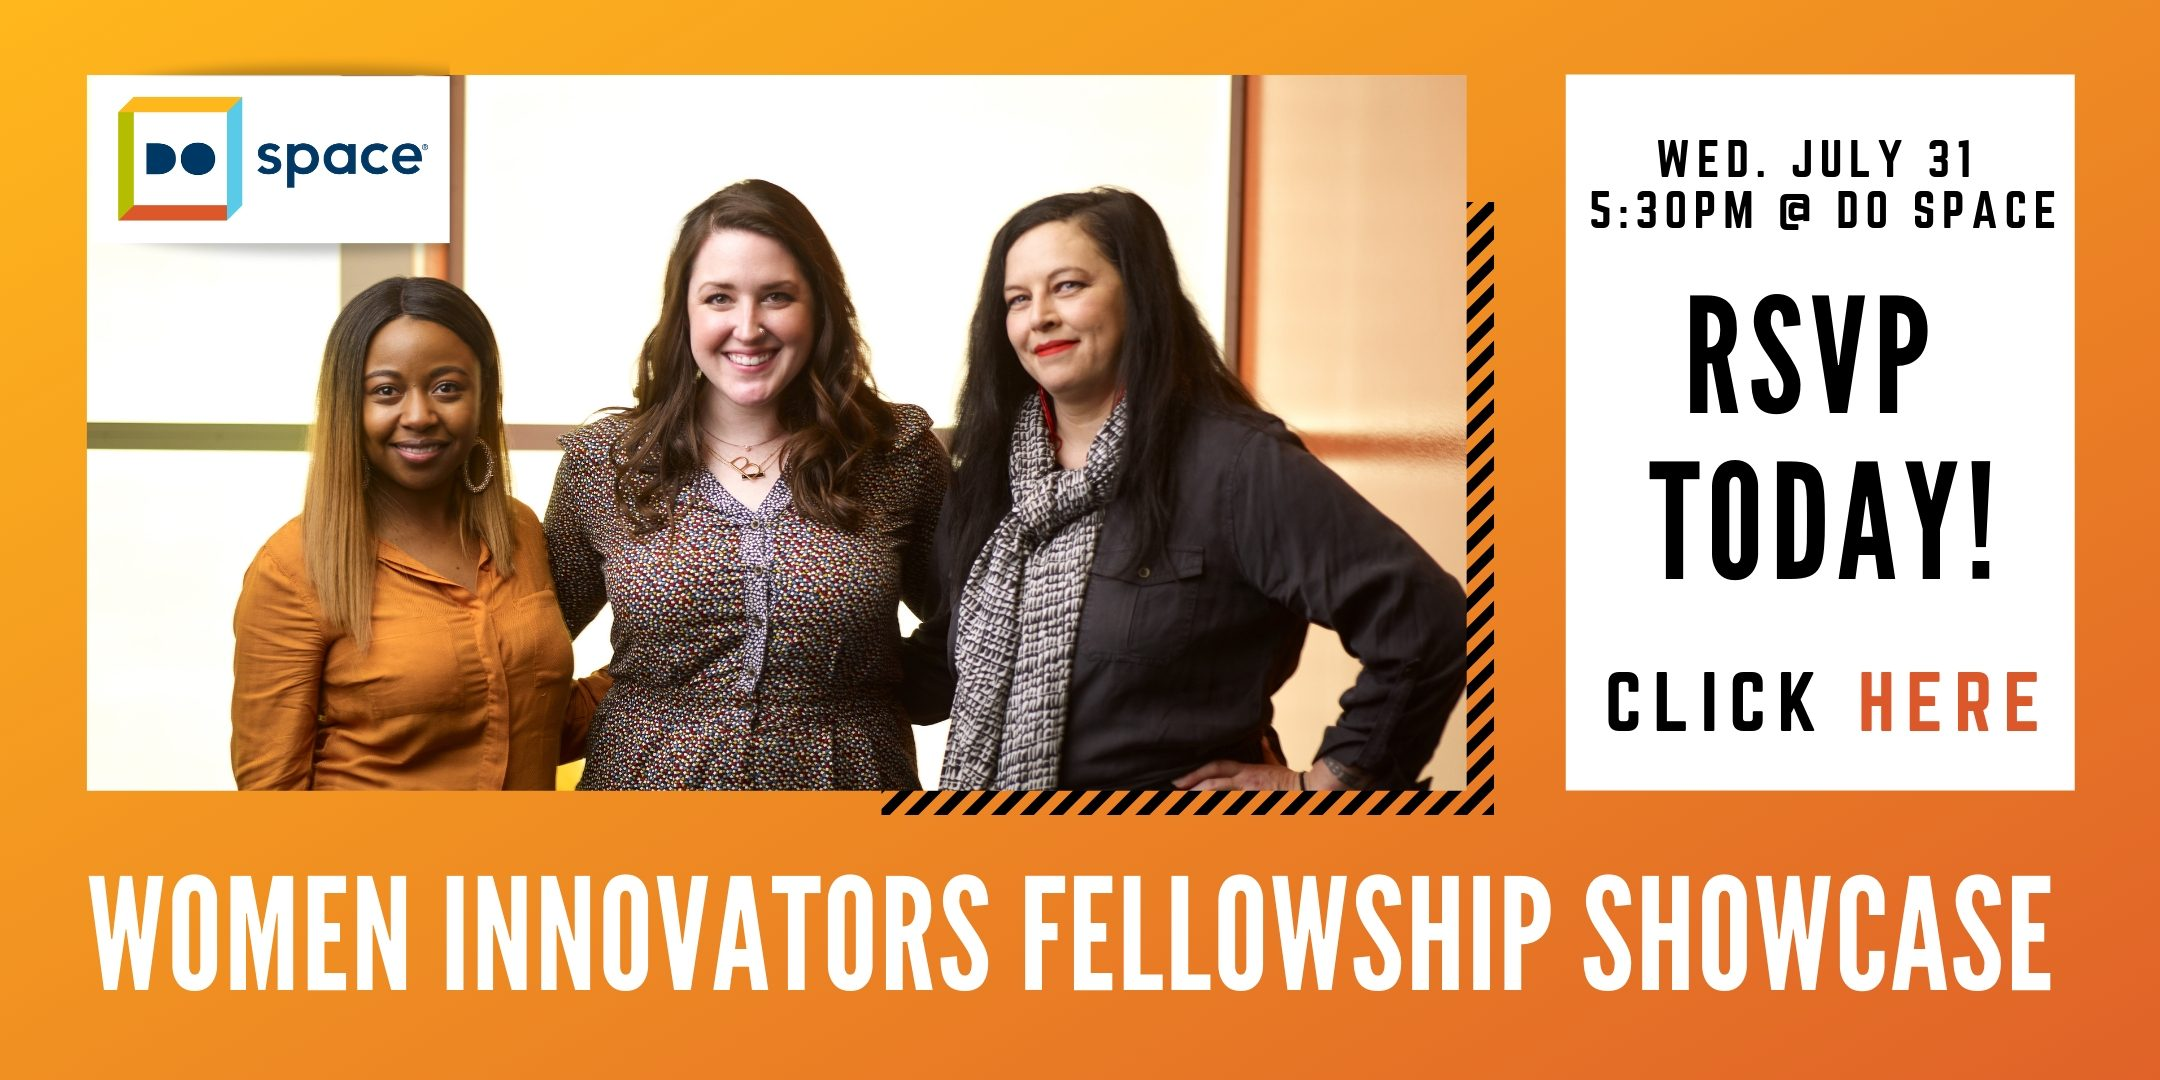 Women Innovators Fellowship Showcase. Wednesday July 31st, 5:30PM at Do Space. RSVP Today! Click Here.